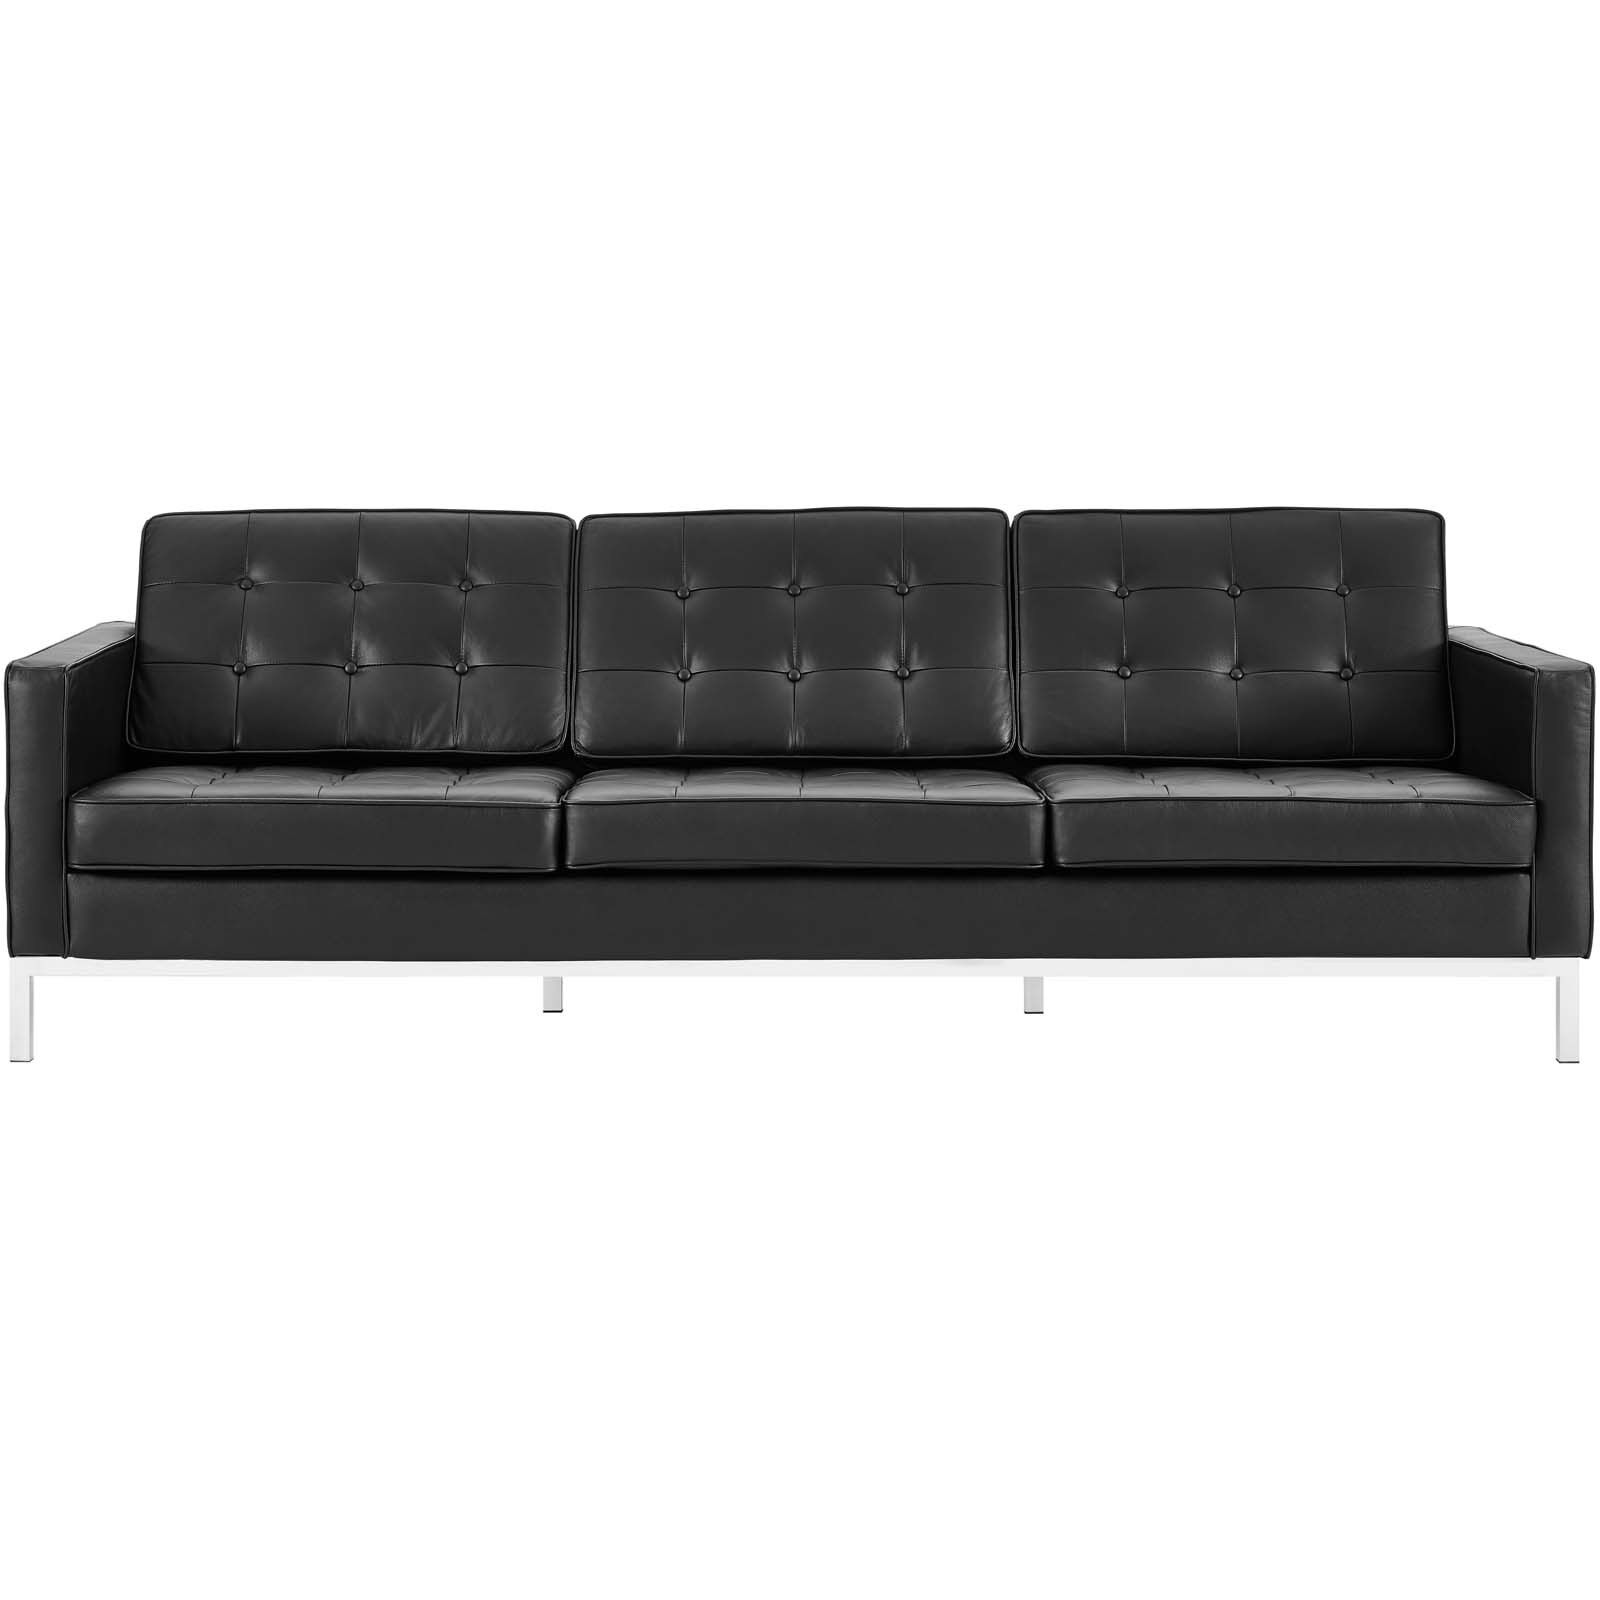 Details about Modway Loft Upholstered Genuine Leather Mid-Century Modern  Sofa In Black